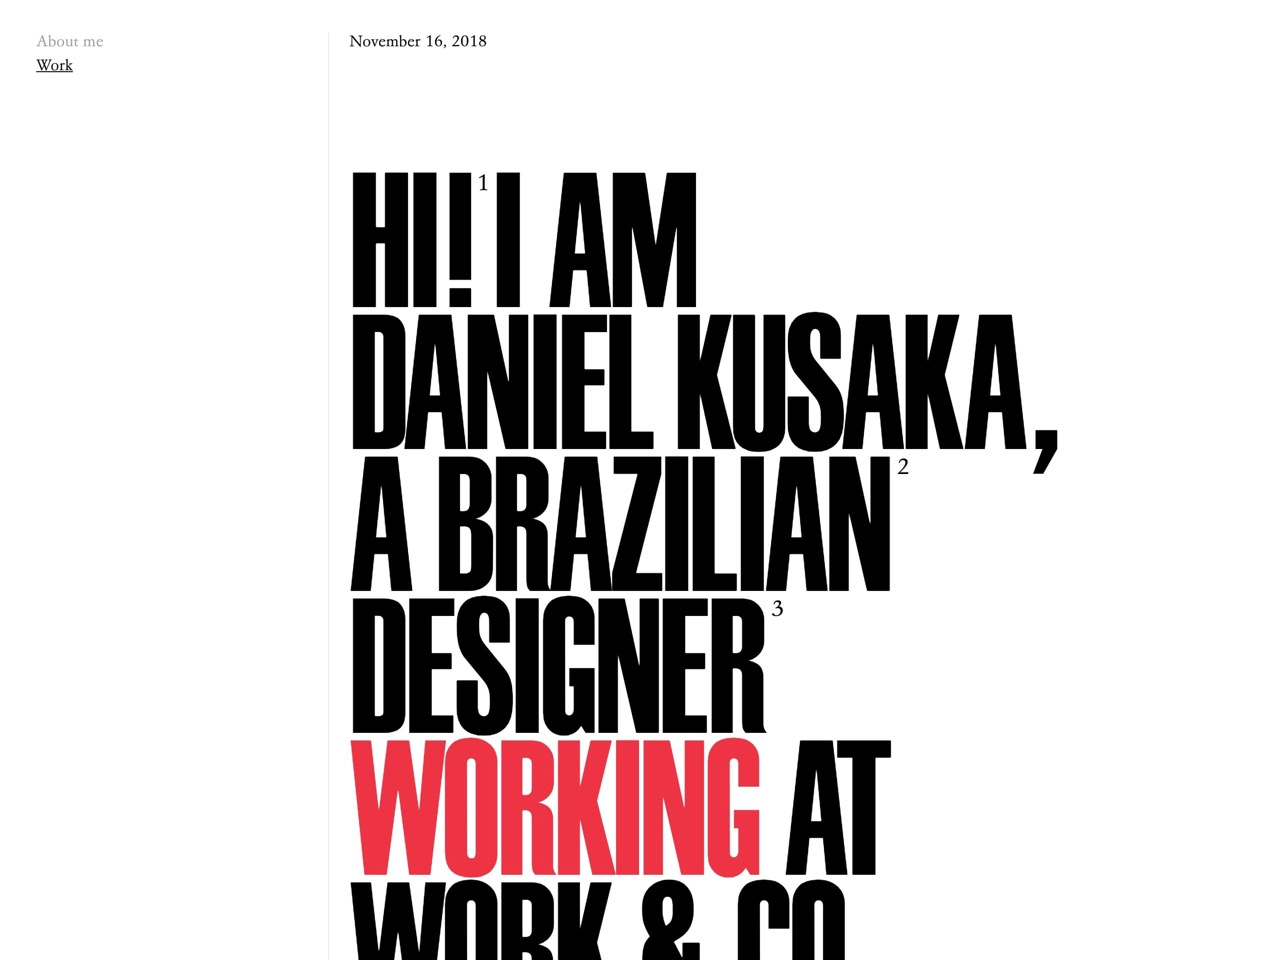 Daniel kusaka   designer at work   co